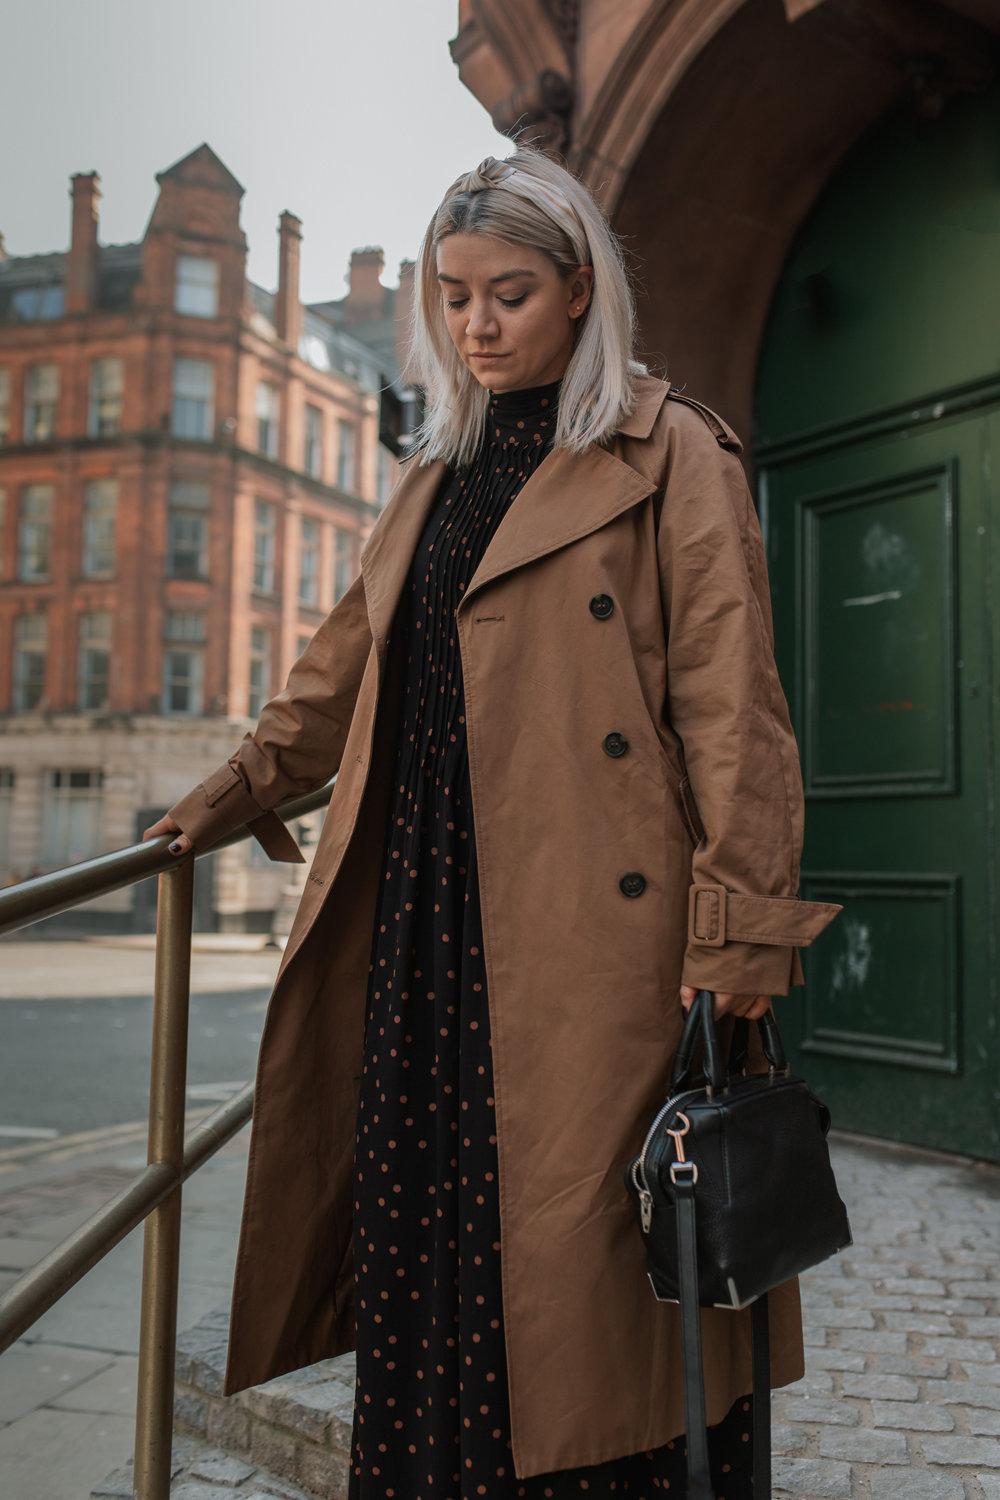 topshop maxi dress, polka dot dress, suede boots, trench coat, joey taylor, northern magpie, headbands 4